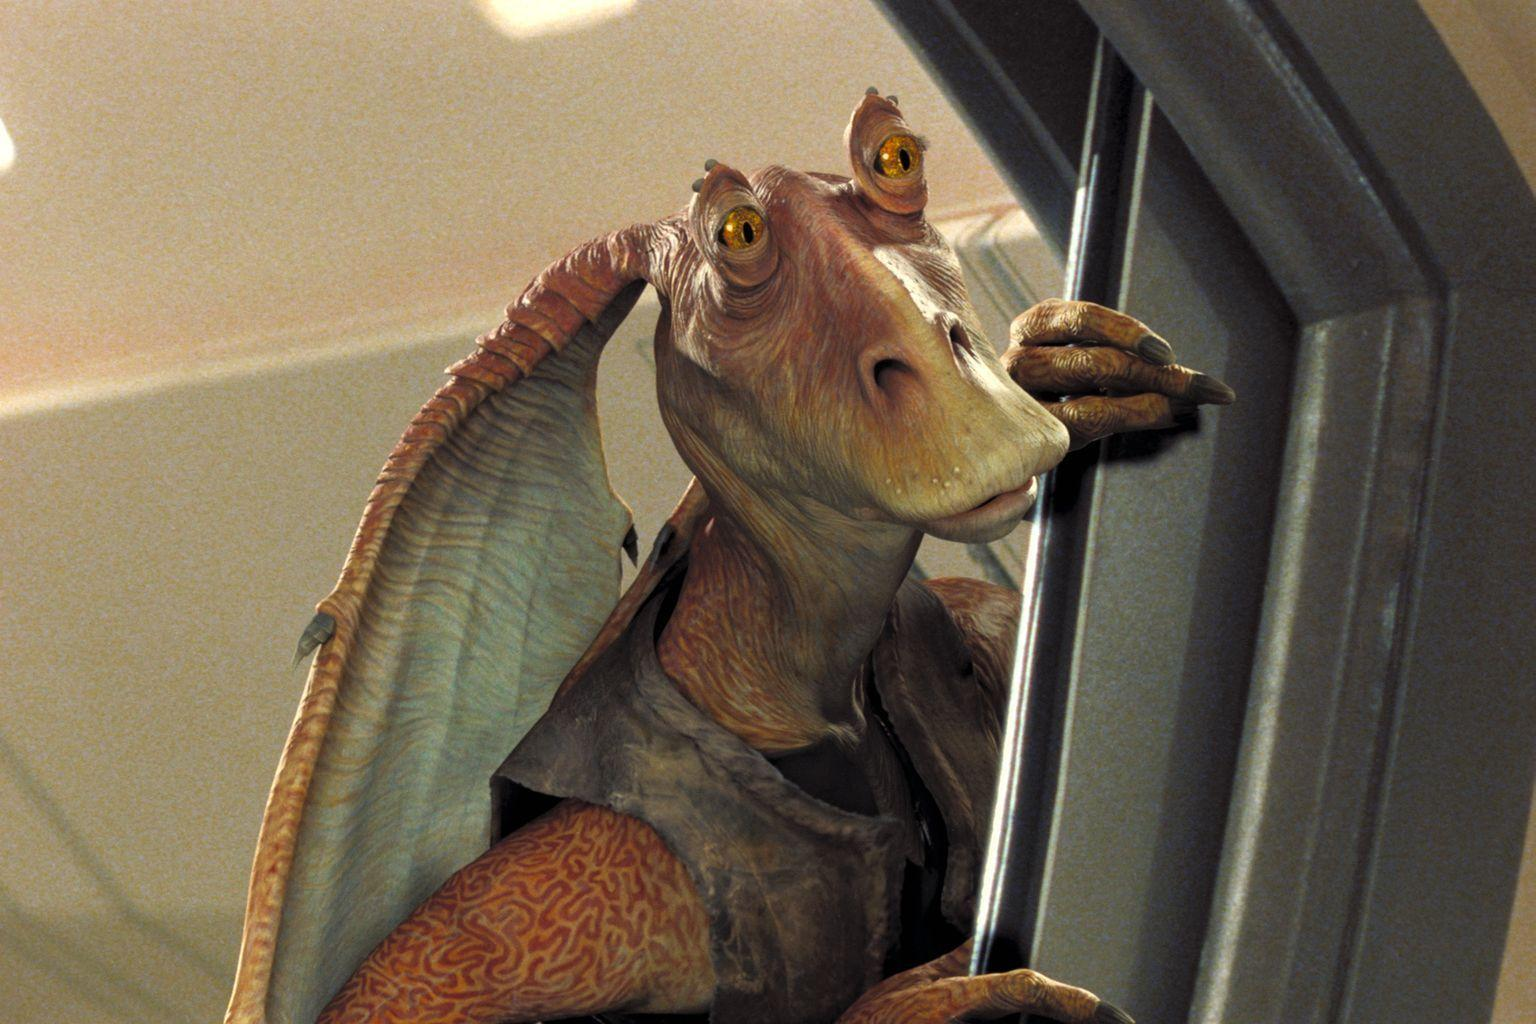 Jar Jar Binks | The Hoth Spot